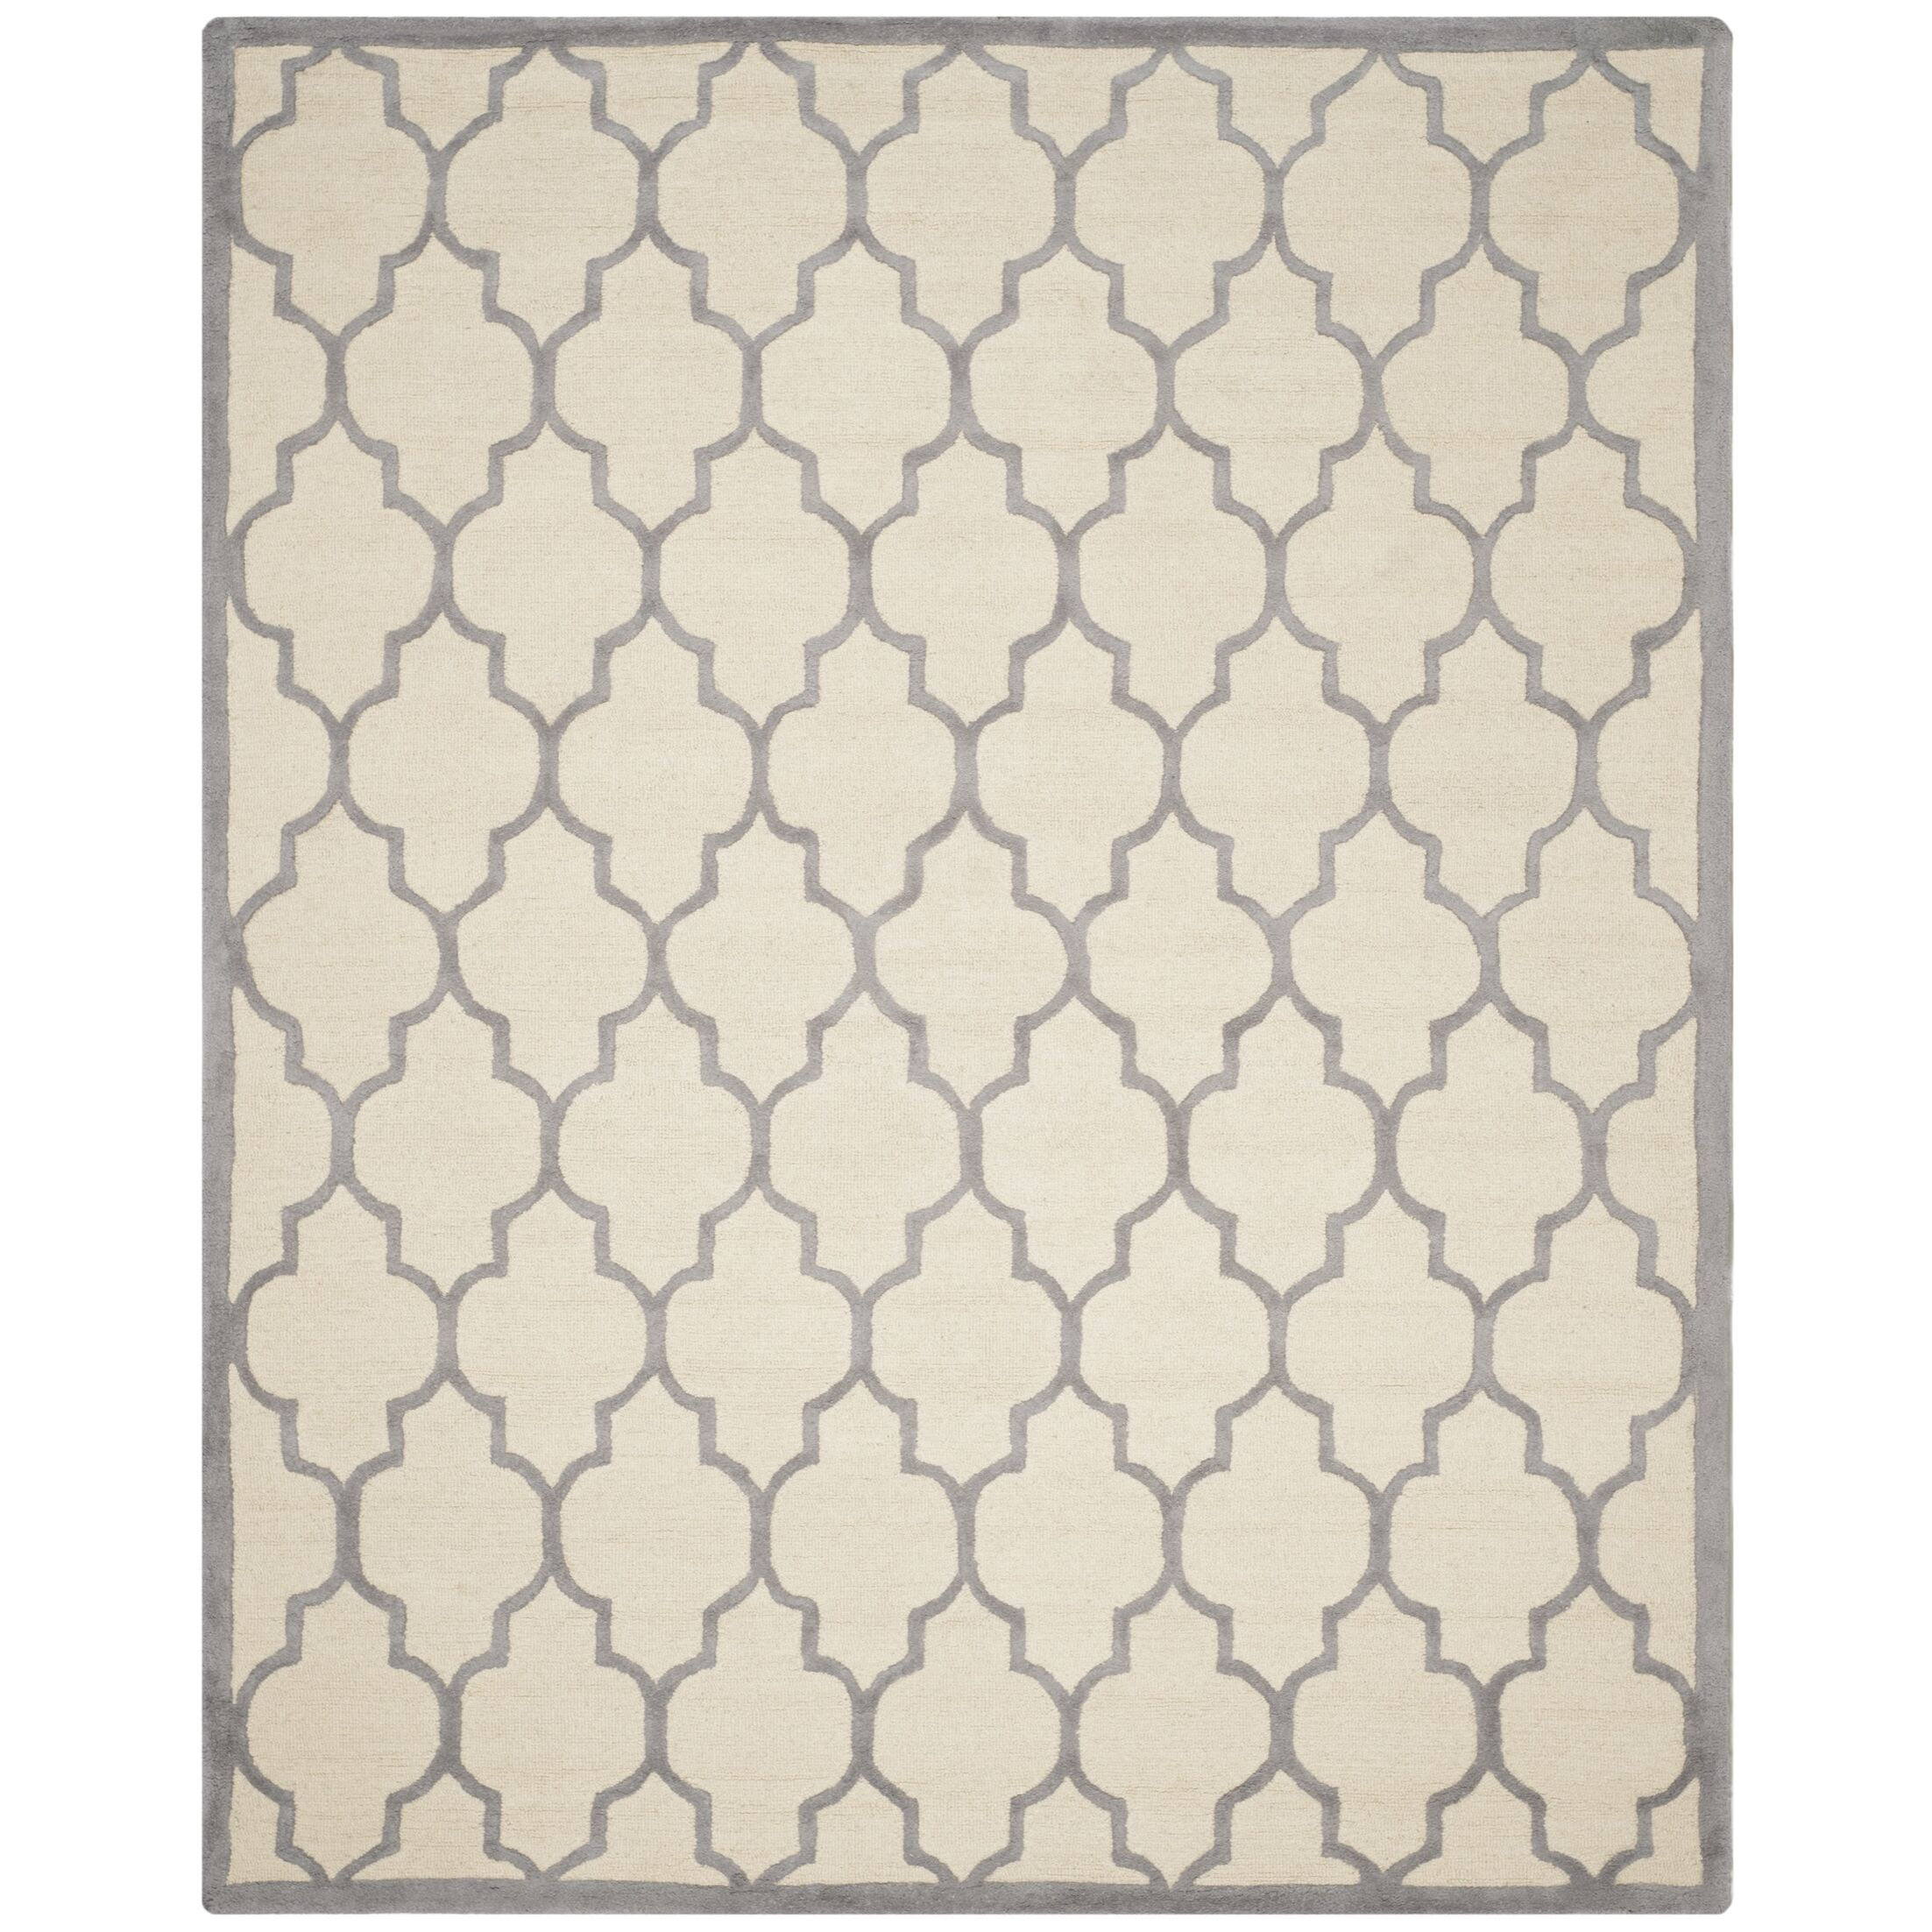 Charlenne Hand-Woven Wool Ivory/Silver Area Rug Rug Size: Runner 2'6